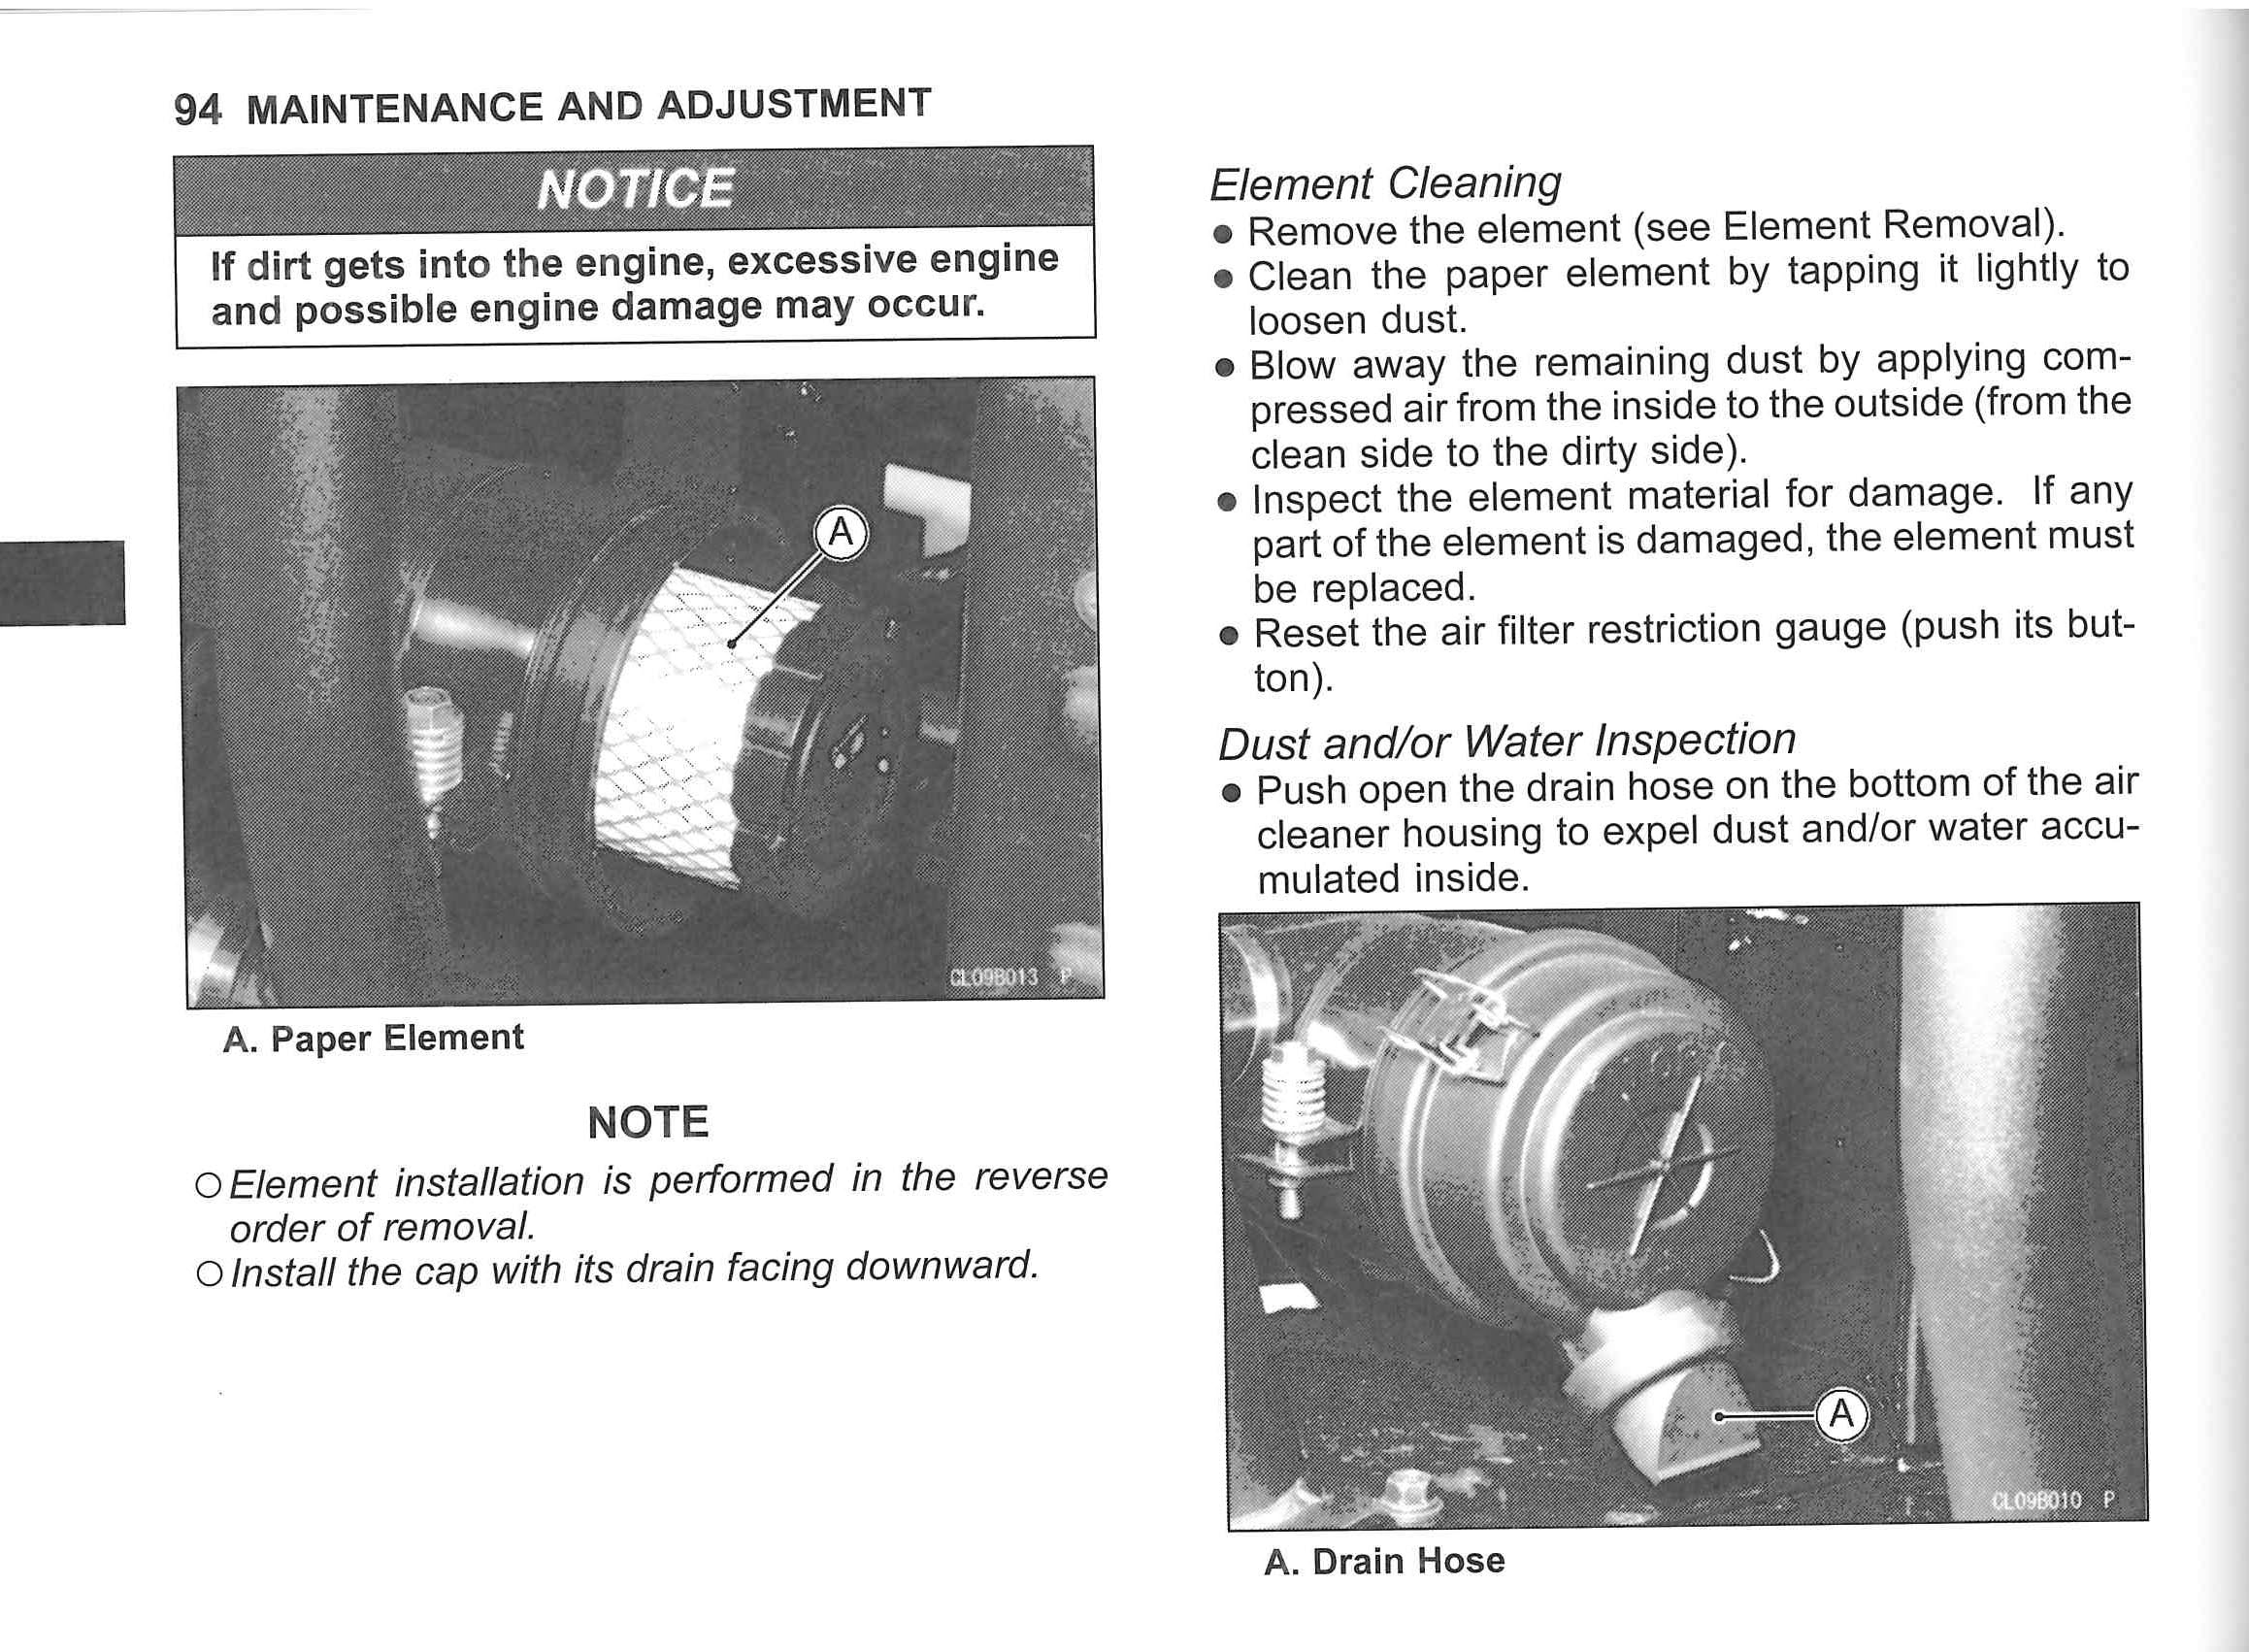 Brake Repair Kawasaki Mule And Adjustment 2000 Jetta Parts Diagram Including Ninja 650r Images